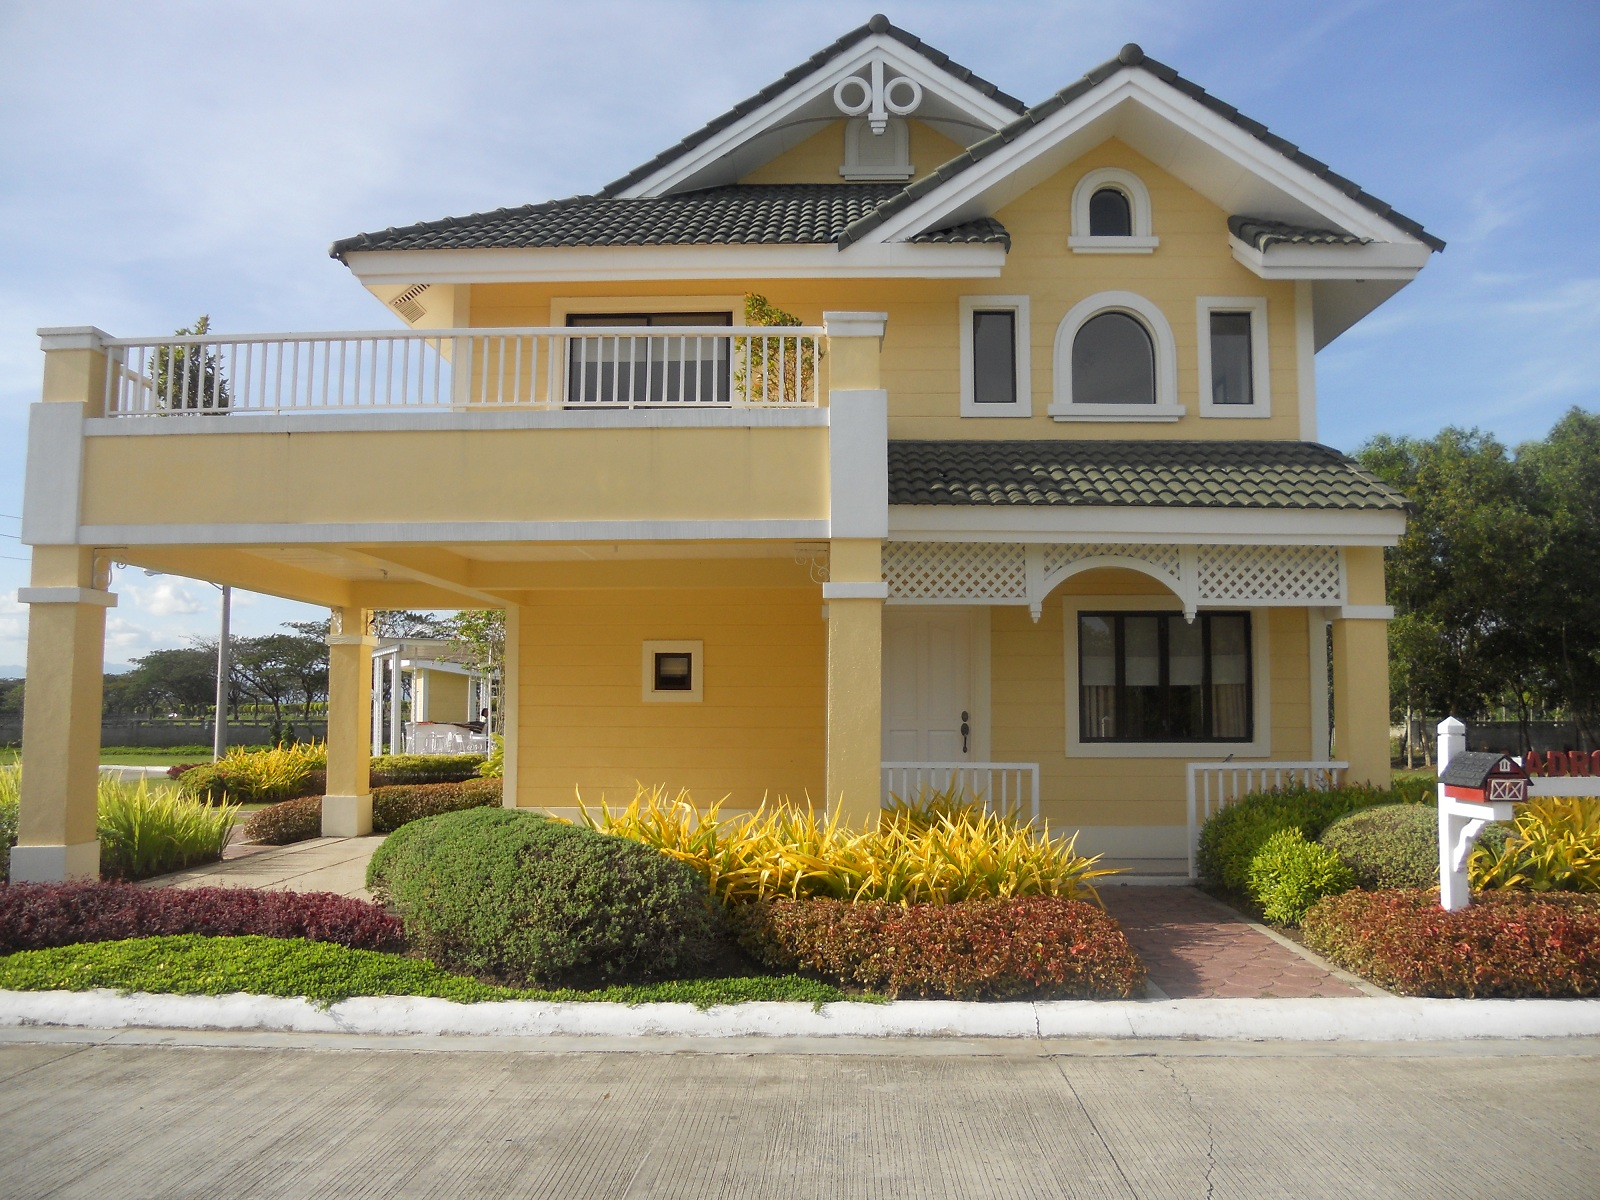 Lladro model house of savannah crest iloilo by camella Latest model houses